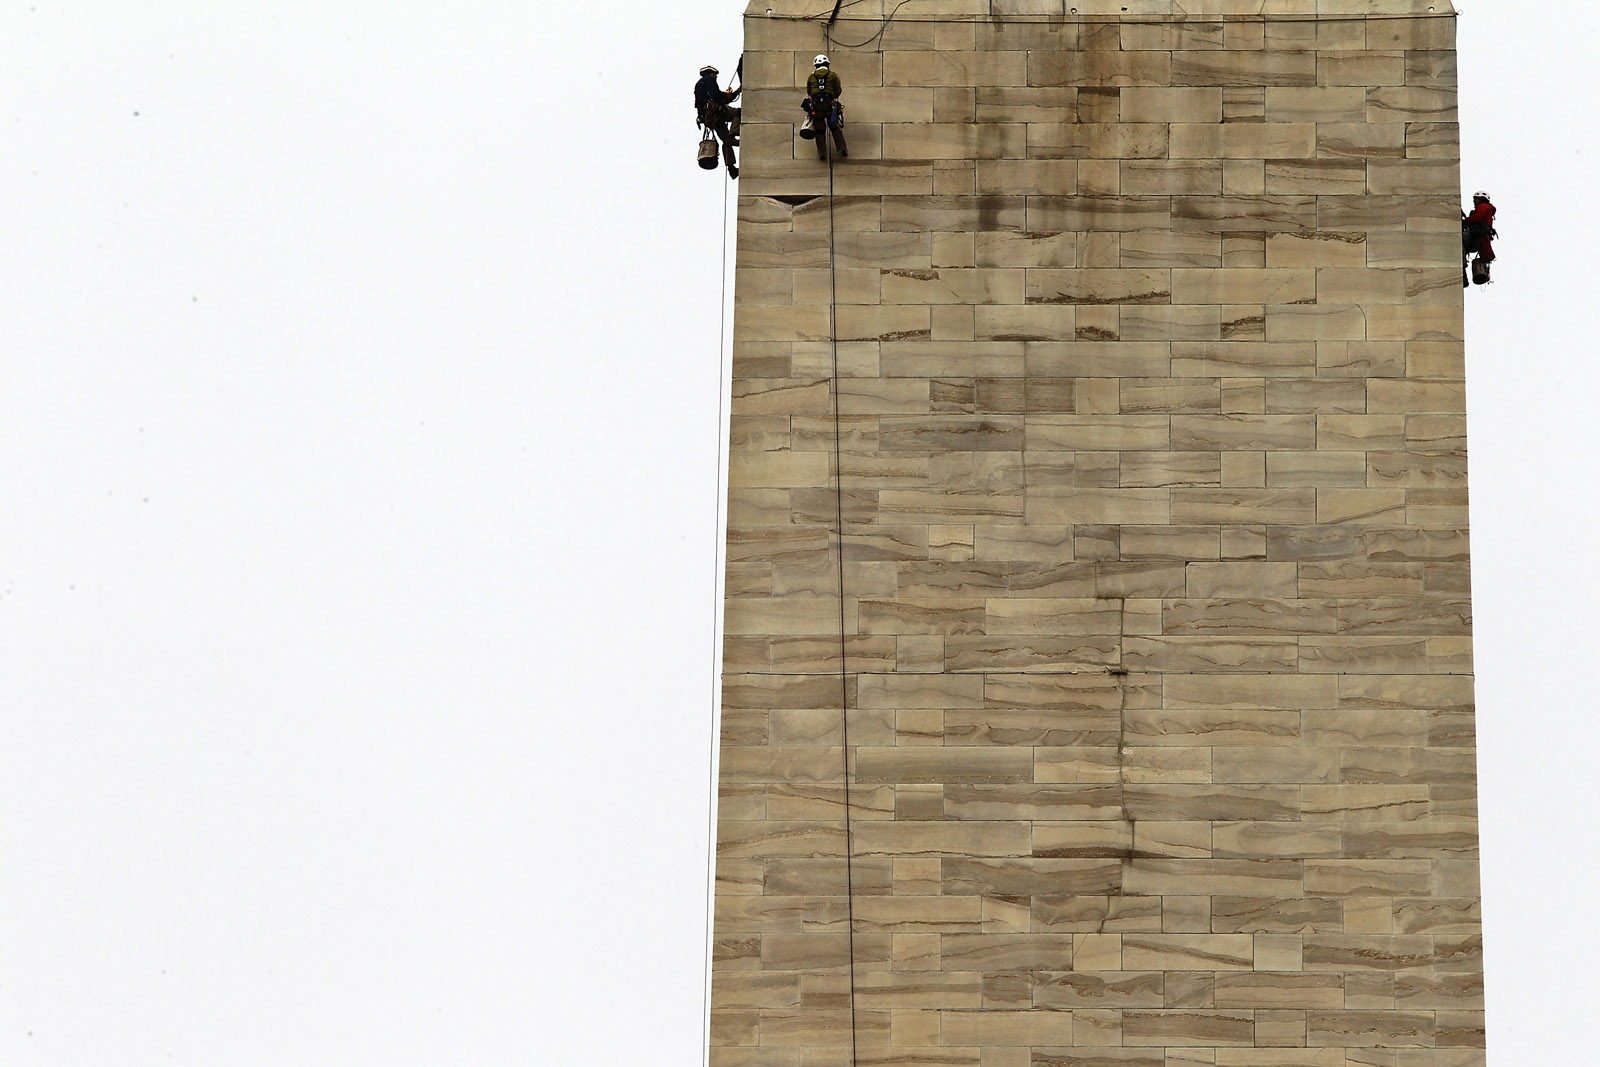 WASHINGTON, DC - OCTOBER 03:  Difficult Access Team (DAT) engineers with Wiss, Janney, Elstner Associates examine stones of the Washington Monument for cracks October 3, 2011 in Washington, DC. The DAT team continued the inspection of the monument to check for more damage caused by the 5.8-magnitude earthquake on August 23, 2011.  (Photo by Alex Wong/Getty Images)